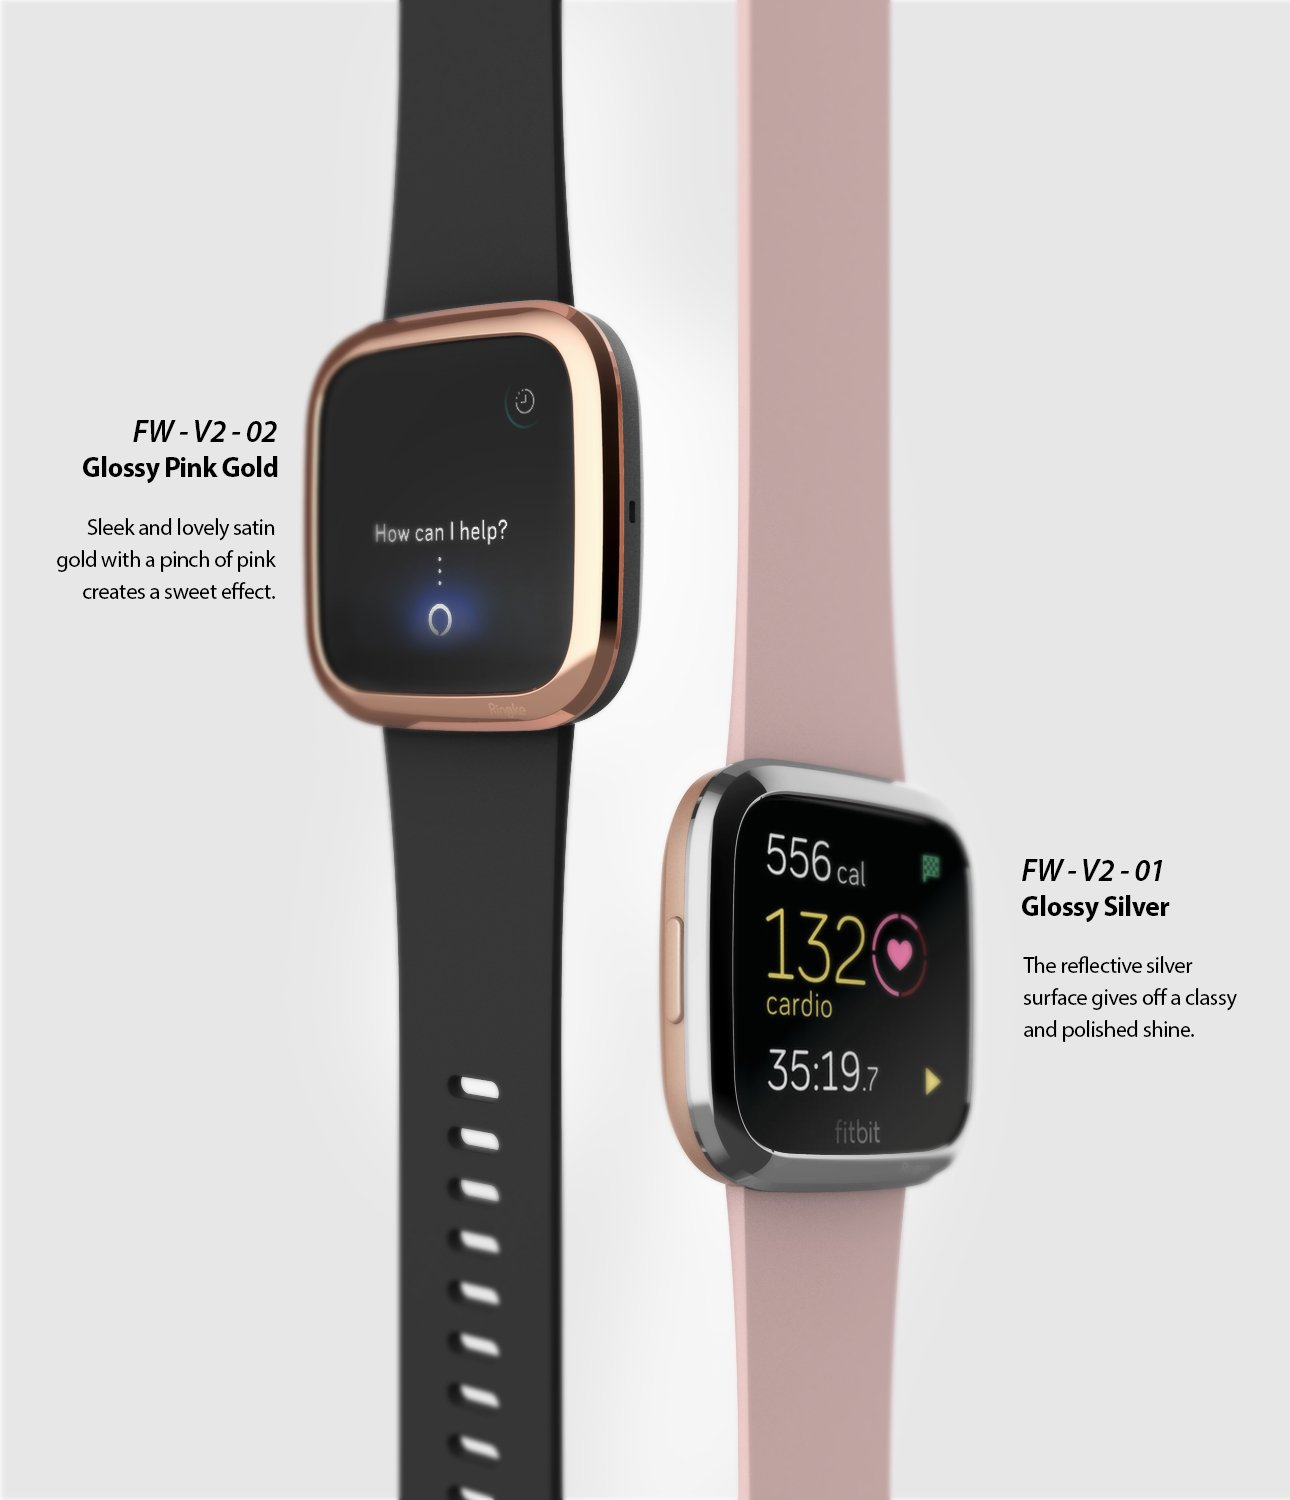 Ringke Bezel Styling Fitbit Versa 2, Full Stainless Steel Frame, Rose Gold, Stainless Steel, 2-02 ST,rose gold, glossy silver